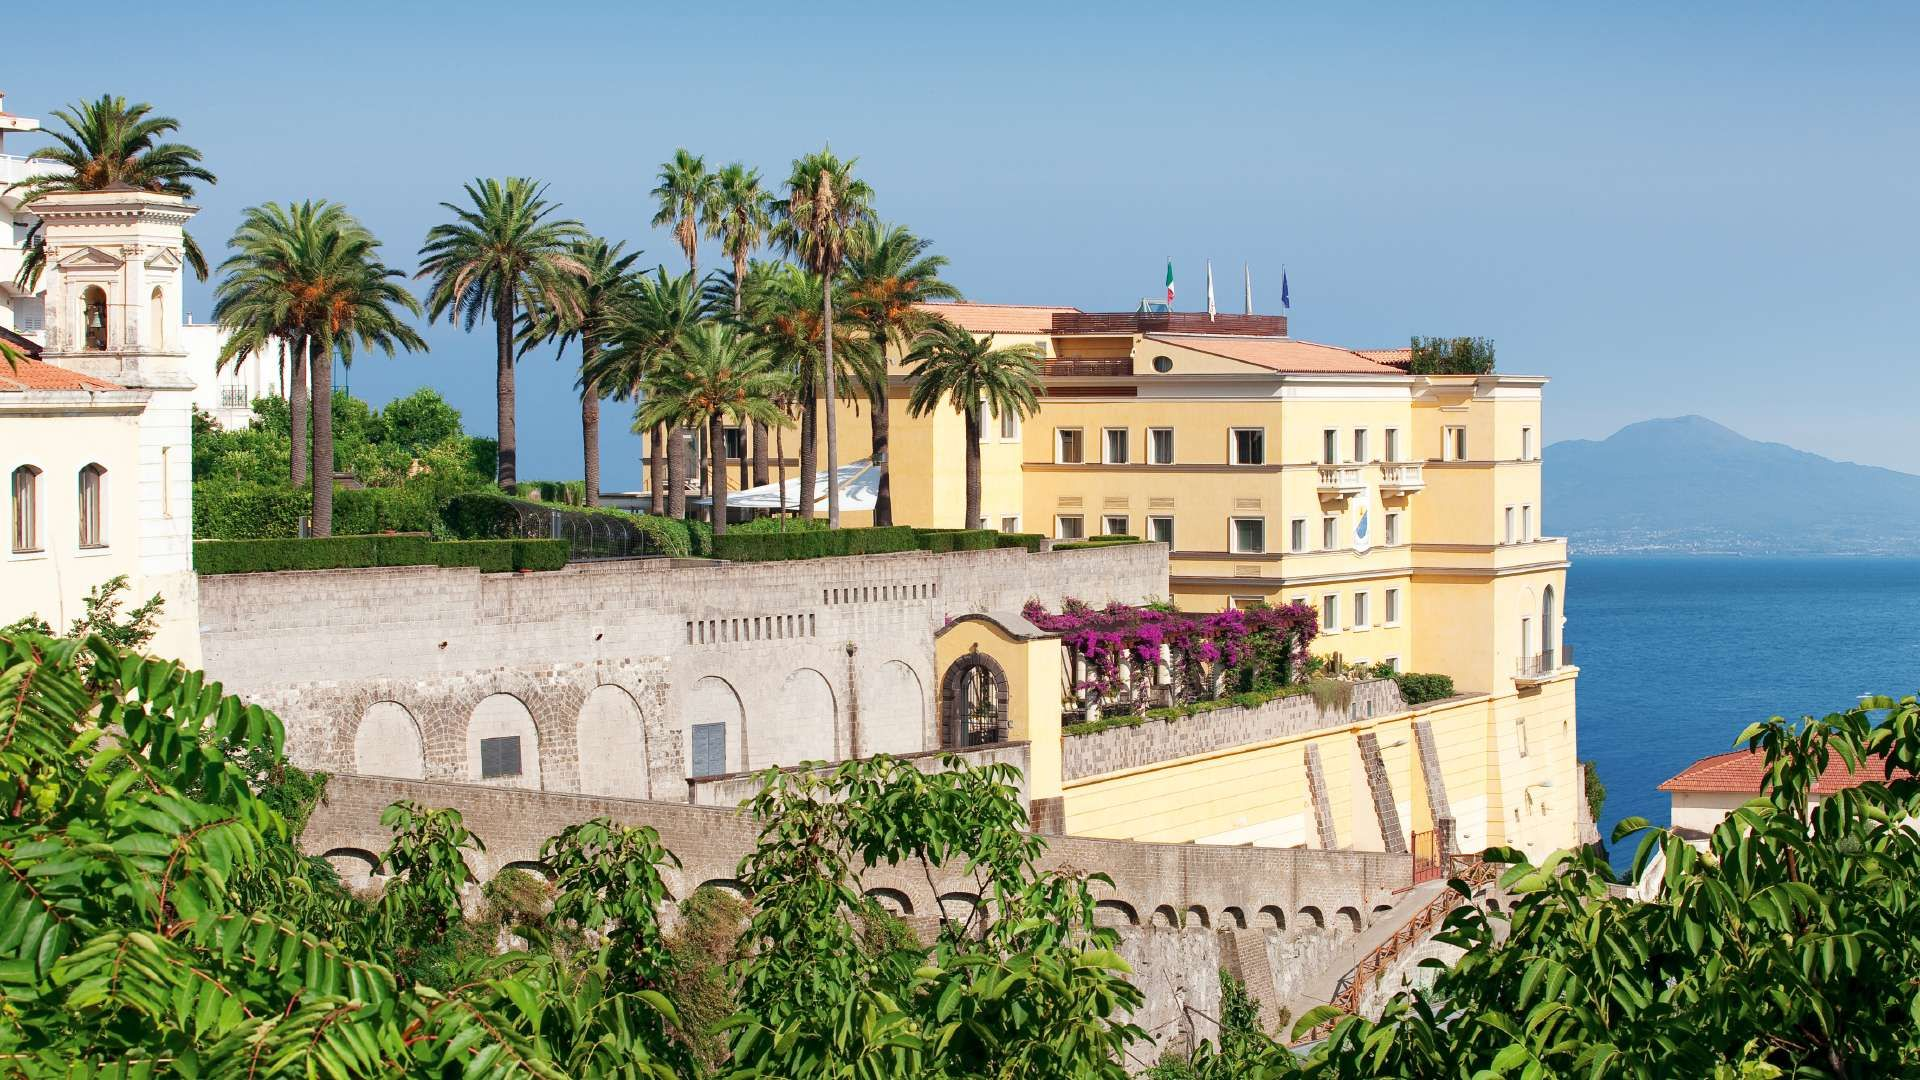 View Grand Hotel Angiolieri in Sorrento